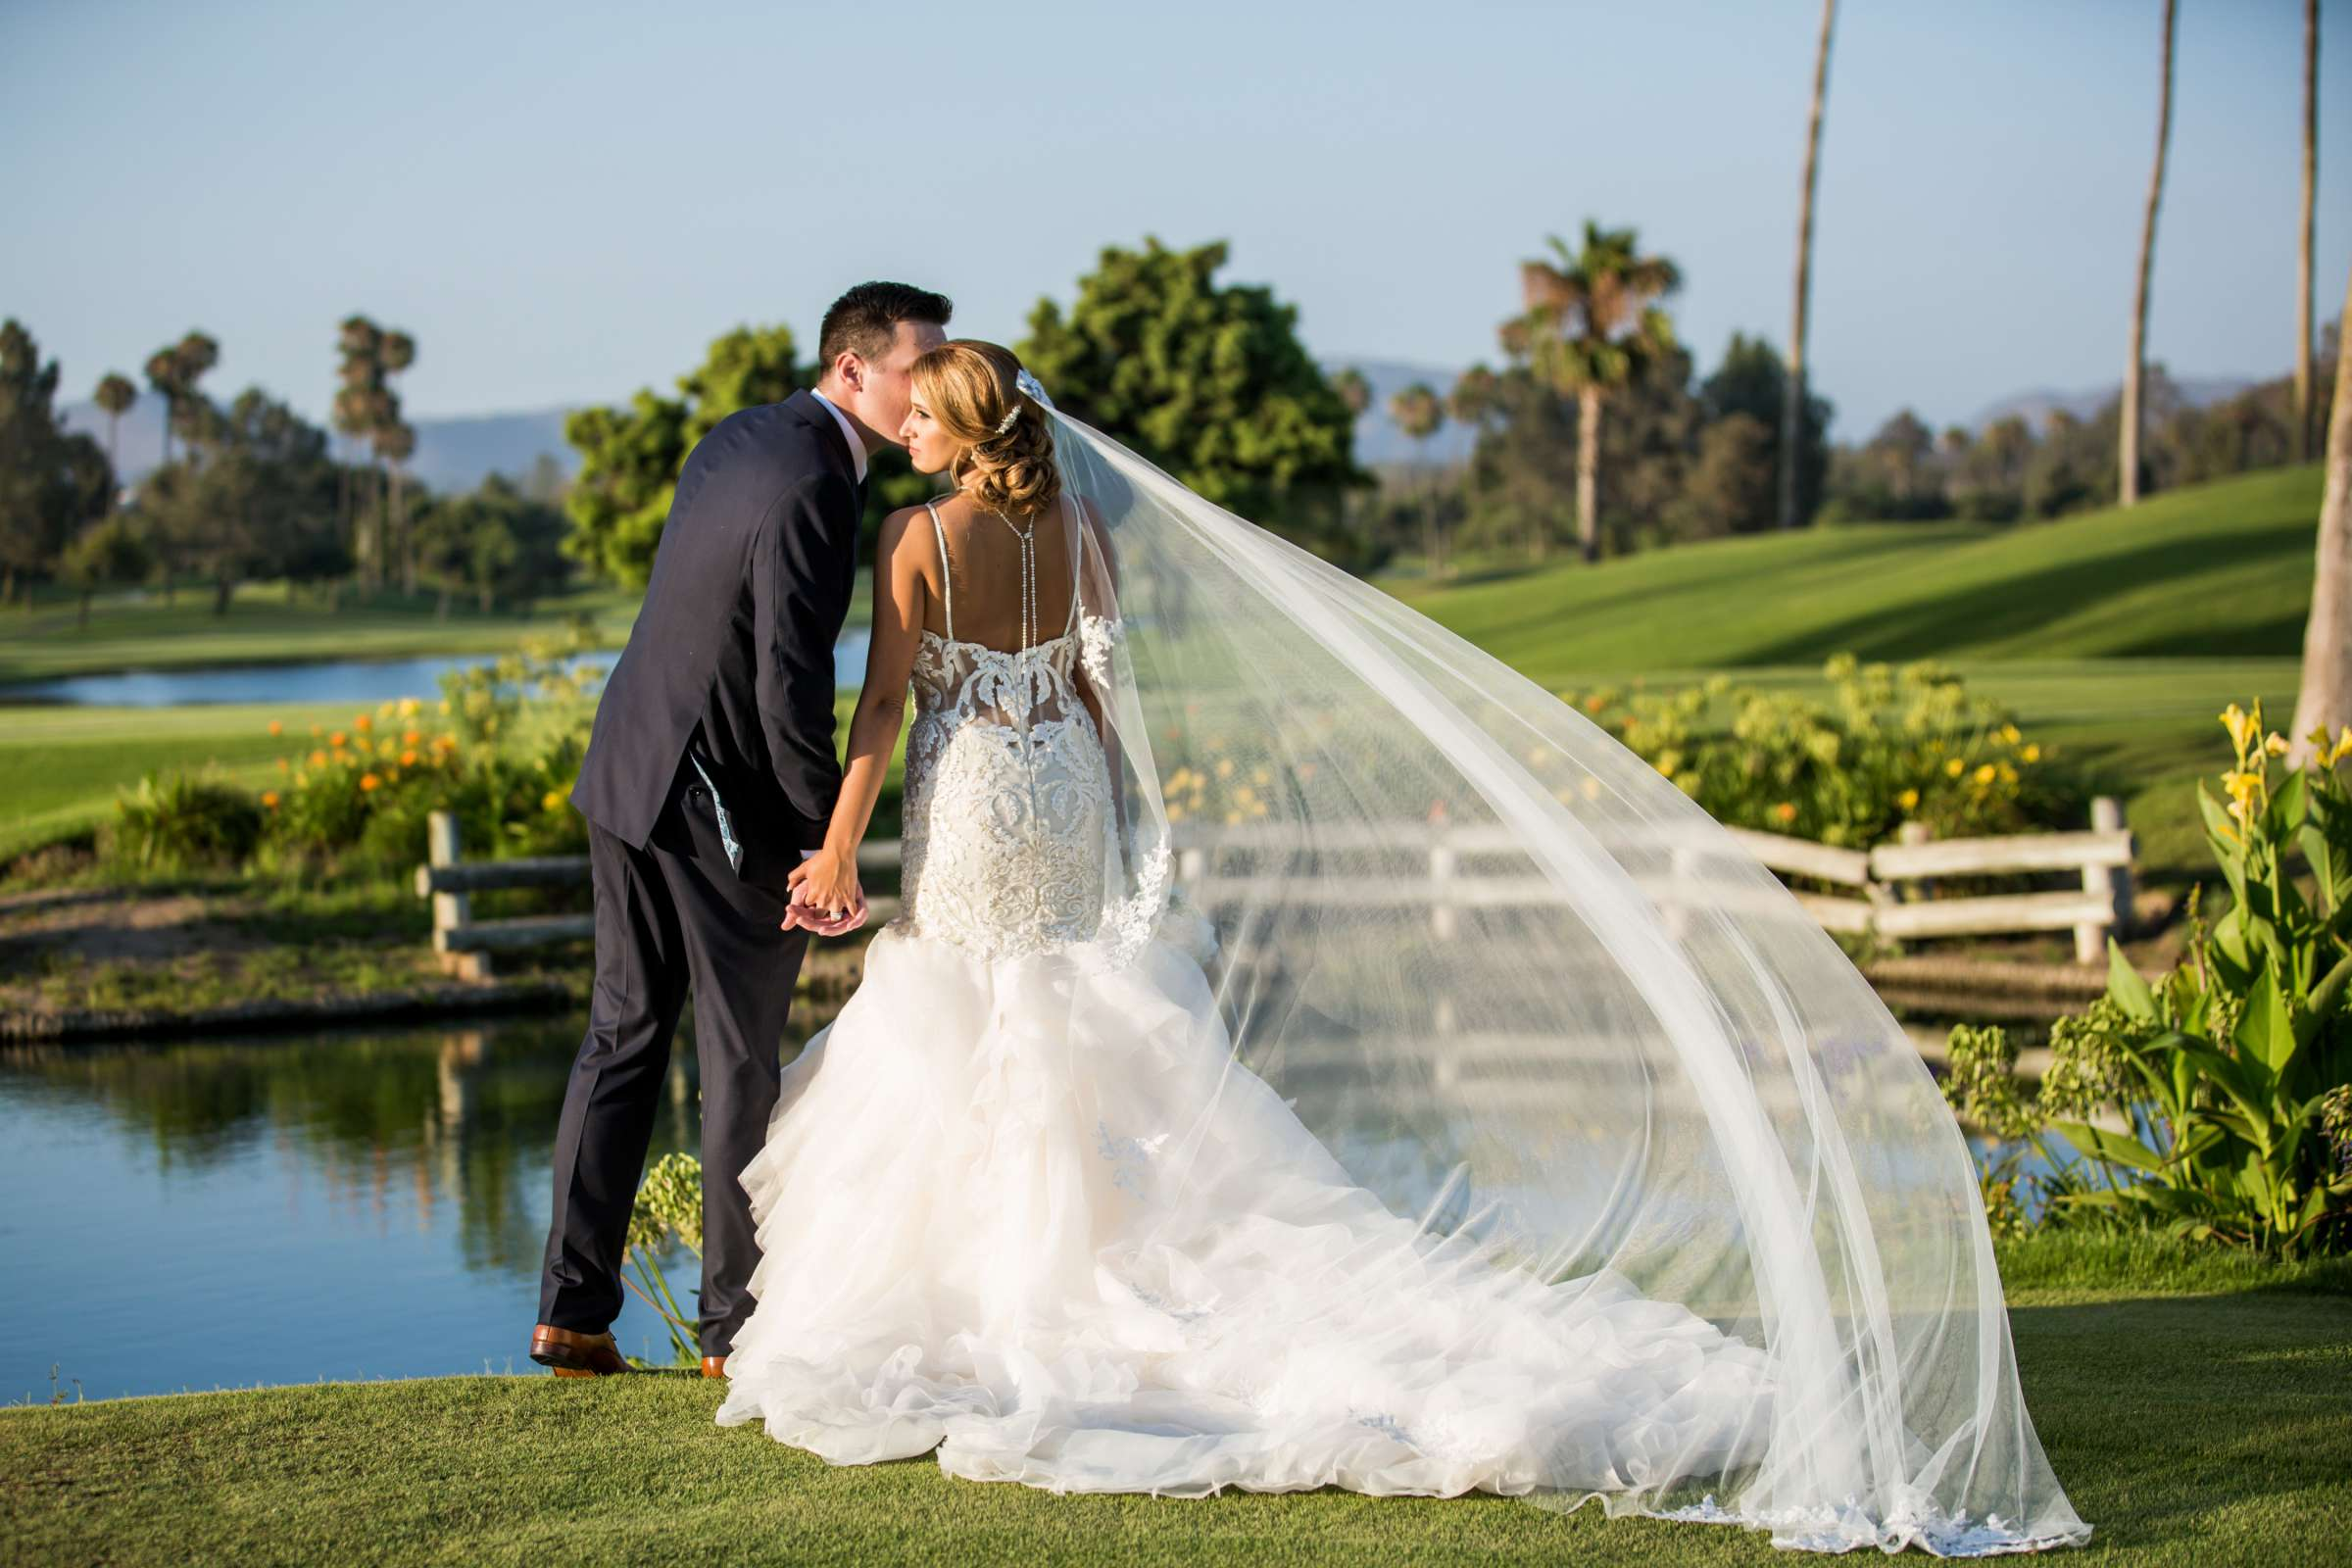 Fairbanks Ranch Country Club Wedding coordinated by Monarch Weddings, Gabriella and Kyle Wedding Photo #114 by True Photography